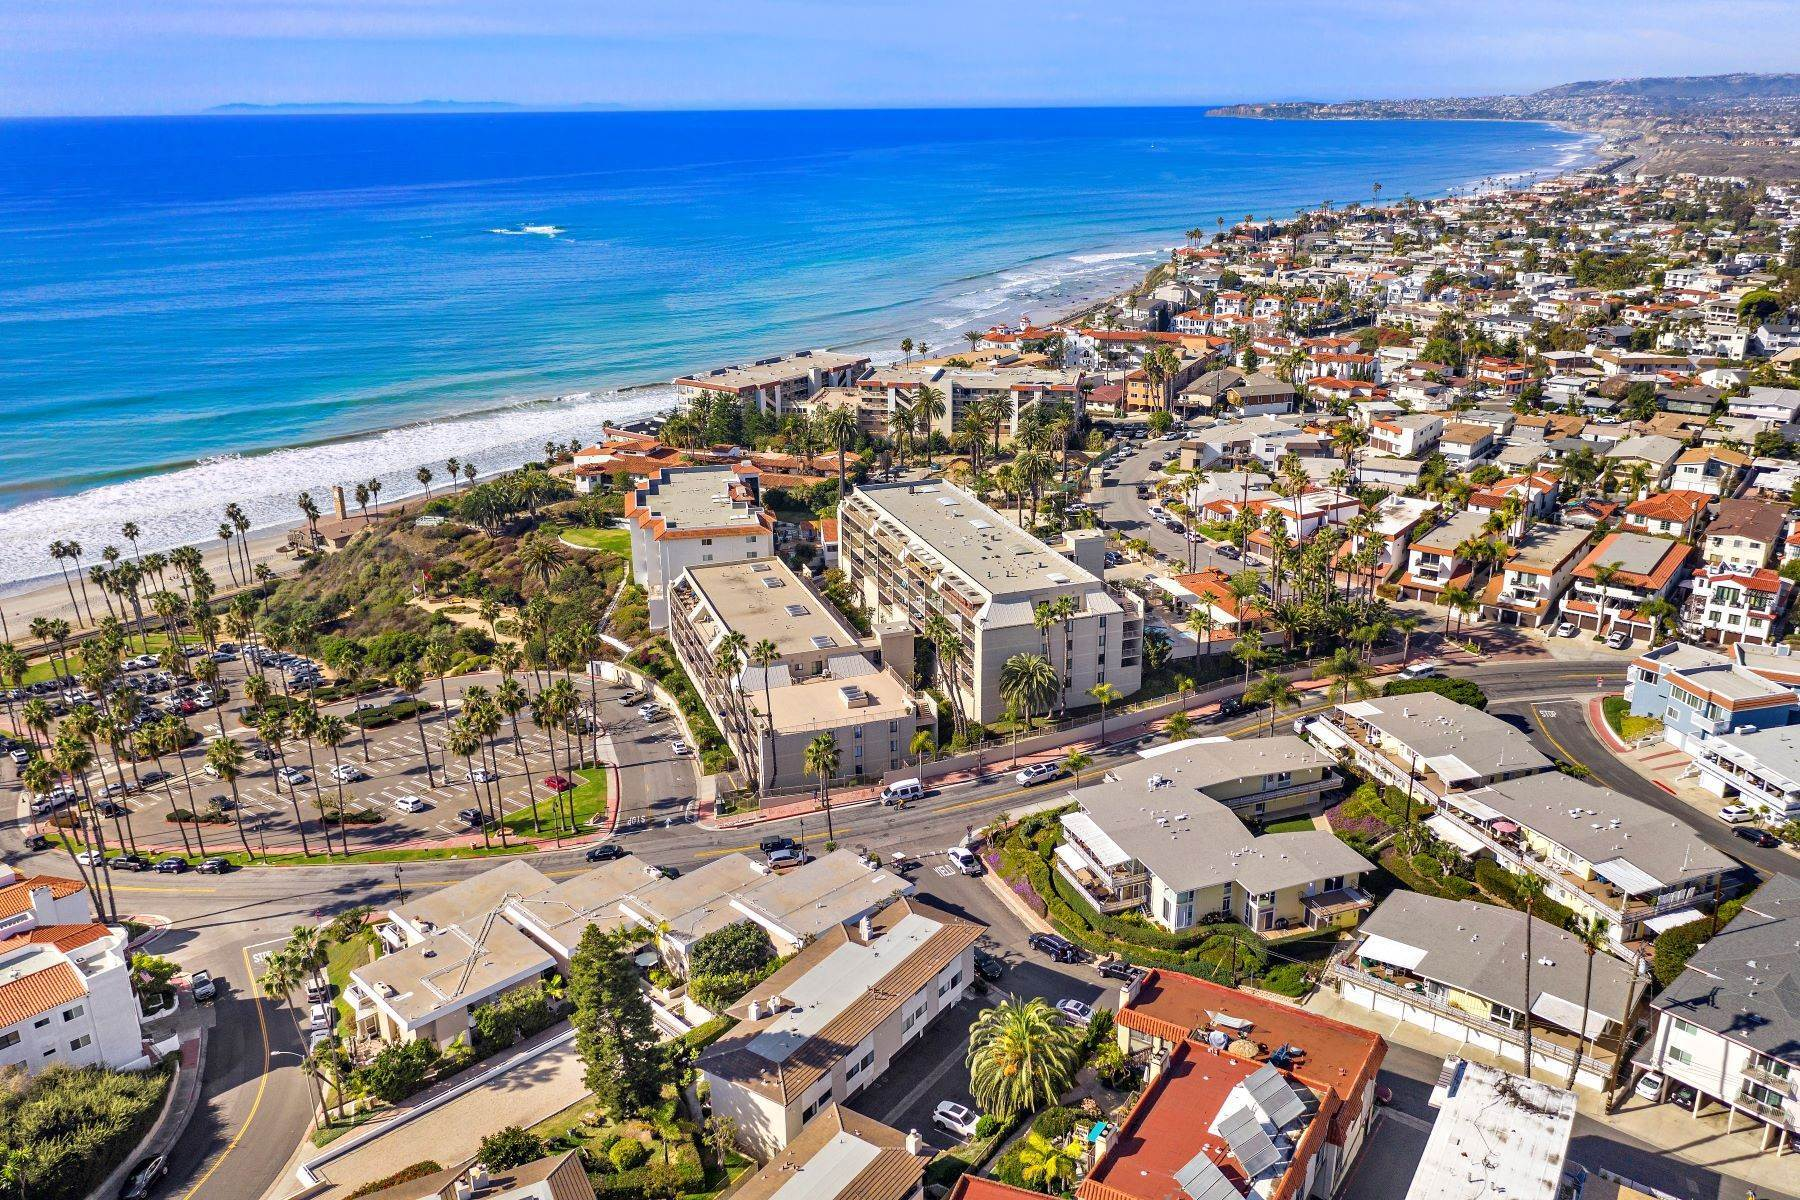 39. Condominiums for Sale at 321 Acebo Lane Unit #C, San Clemente, CA 92672 321 Acebo Lane, Unit #C San Clemente, California 92672 United States